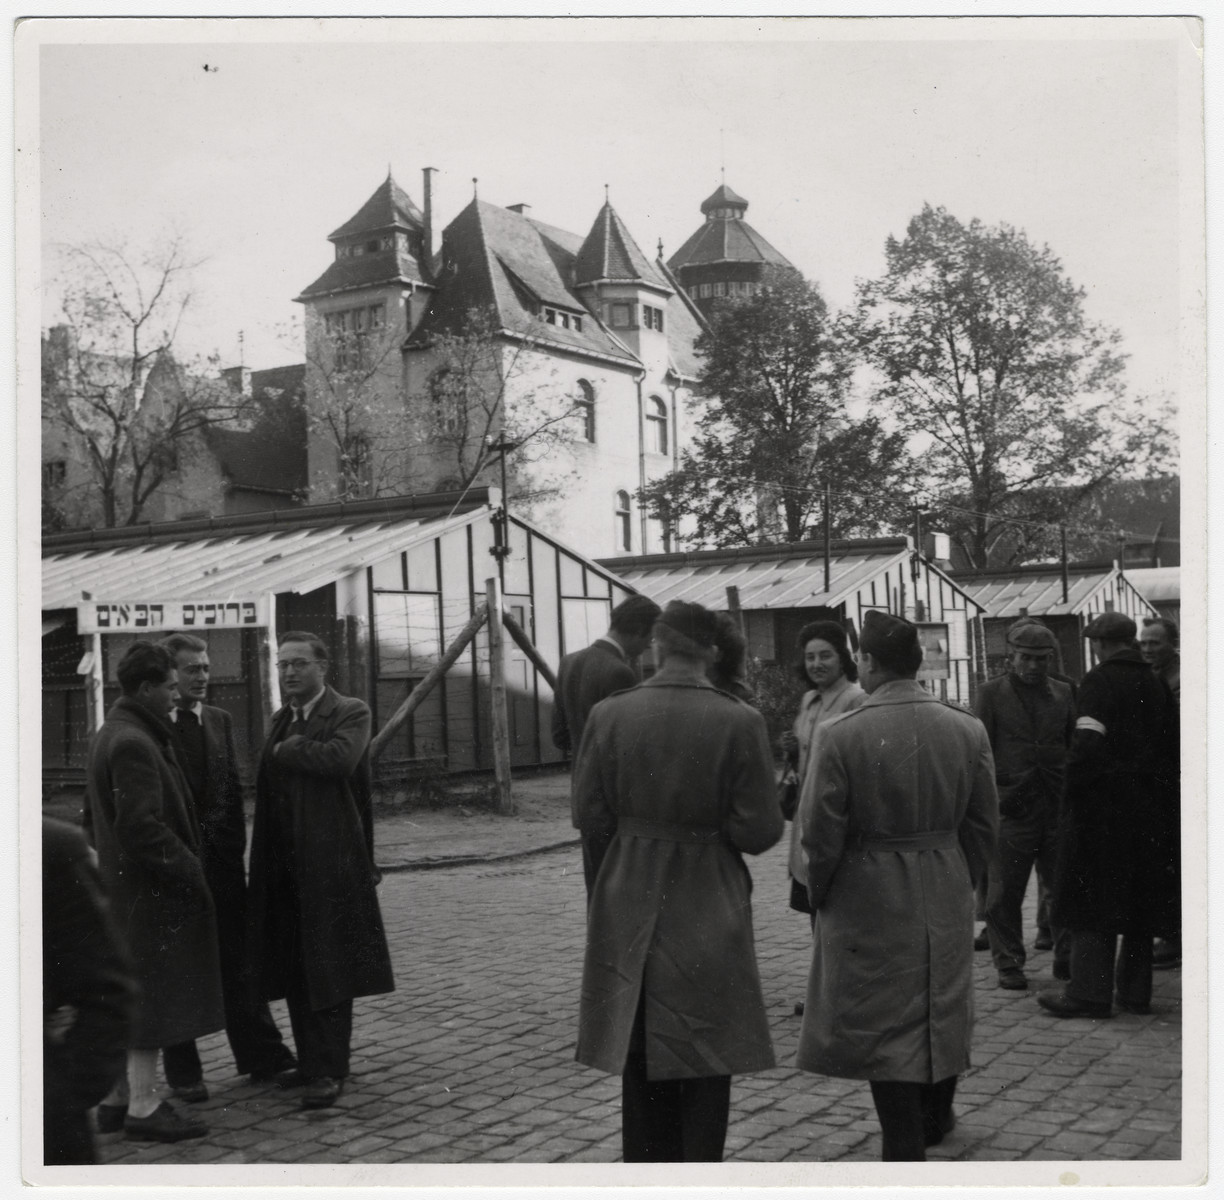 People gather in a public square in front of a castle.  A welcome sign in Hebrew is on the left.